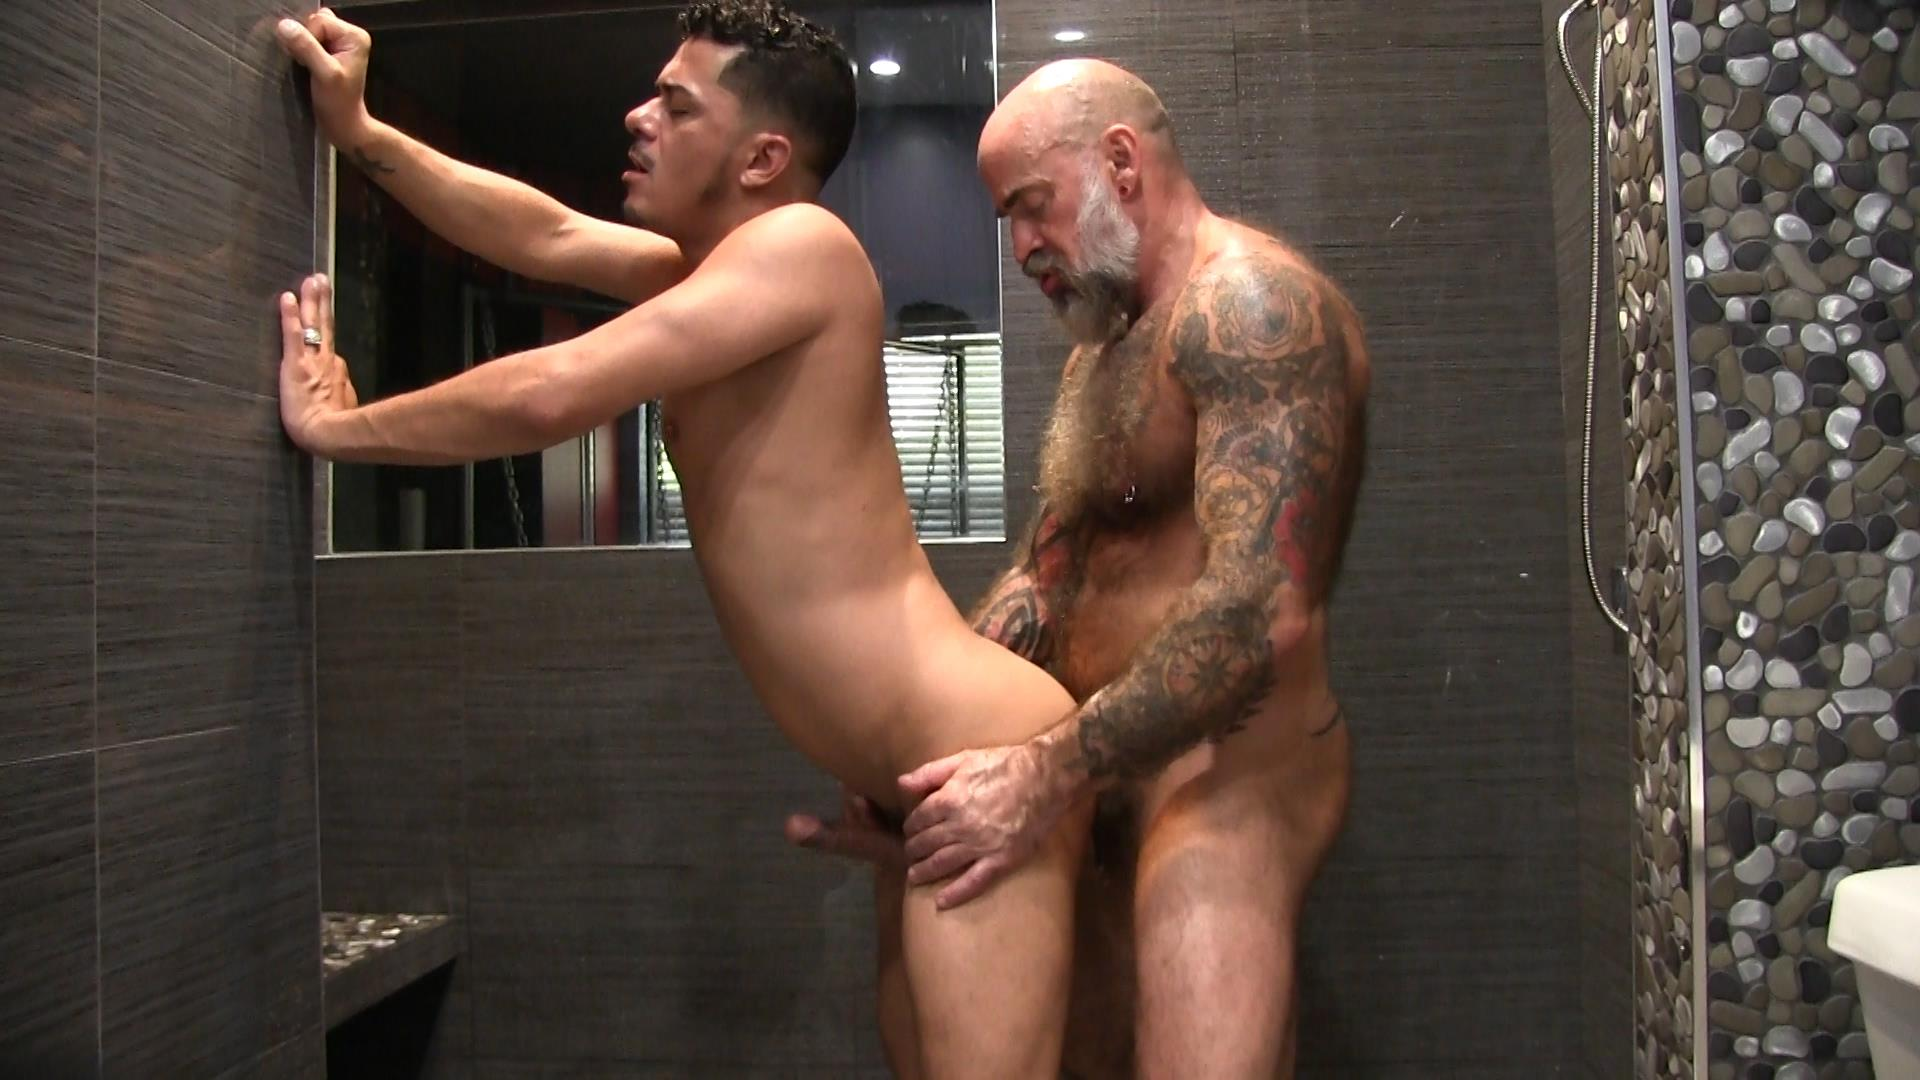 Victor-Cody-XXX-Nate-Pierce-and-Cesar-Xes-Bareback-Bathhouse-Sex-14 Getting Fucked By A Hairy Daddy In The Bathhouse Shower